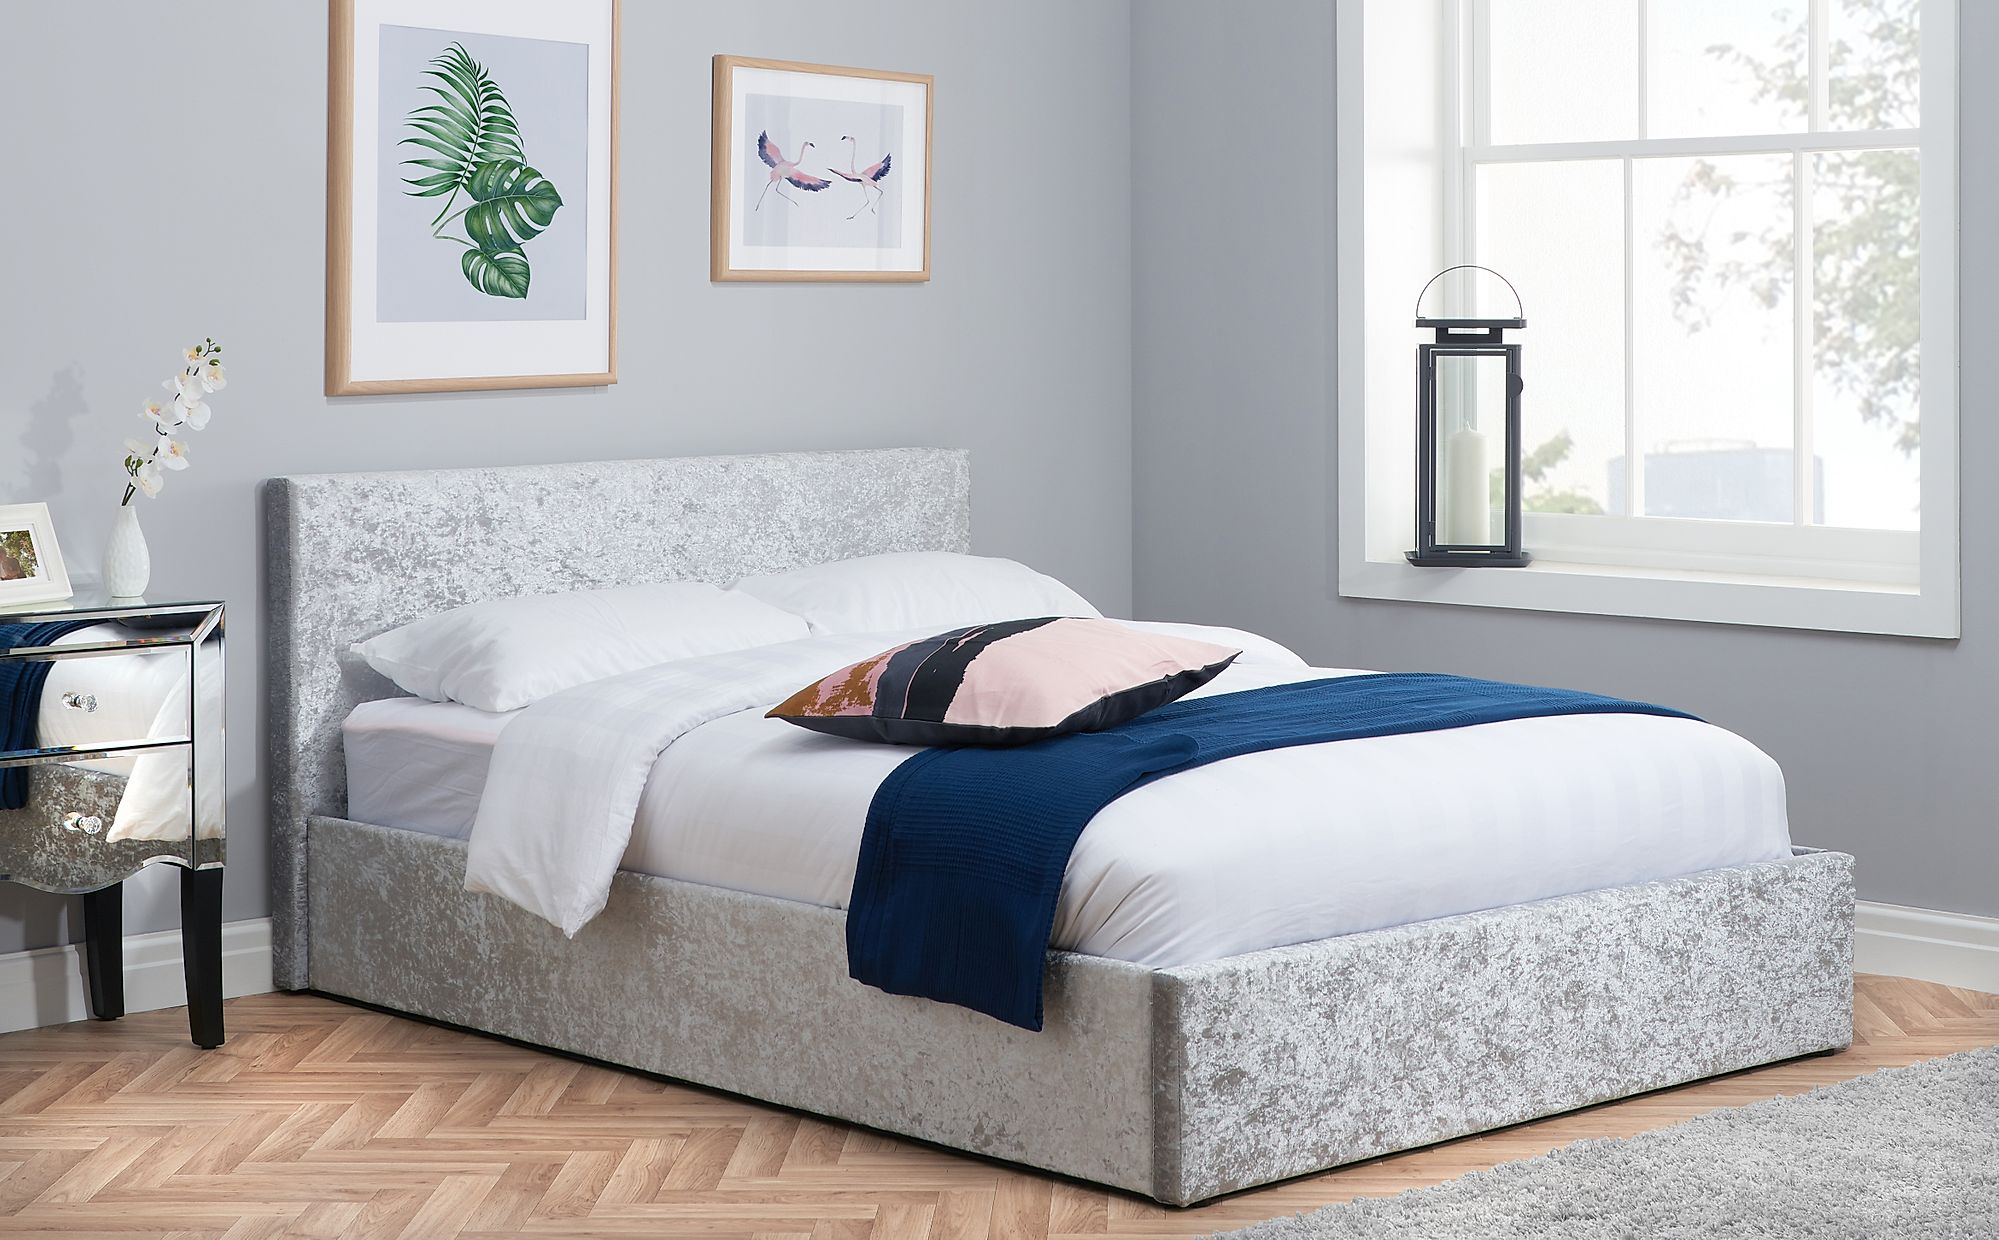 new styles febe5 b8176 Berlin Silver Crushed Velvet Ottoman Bed - Small Double